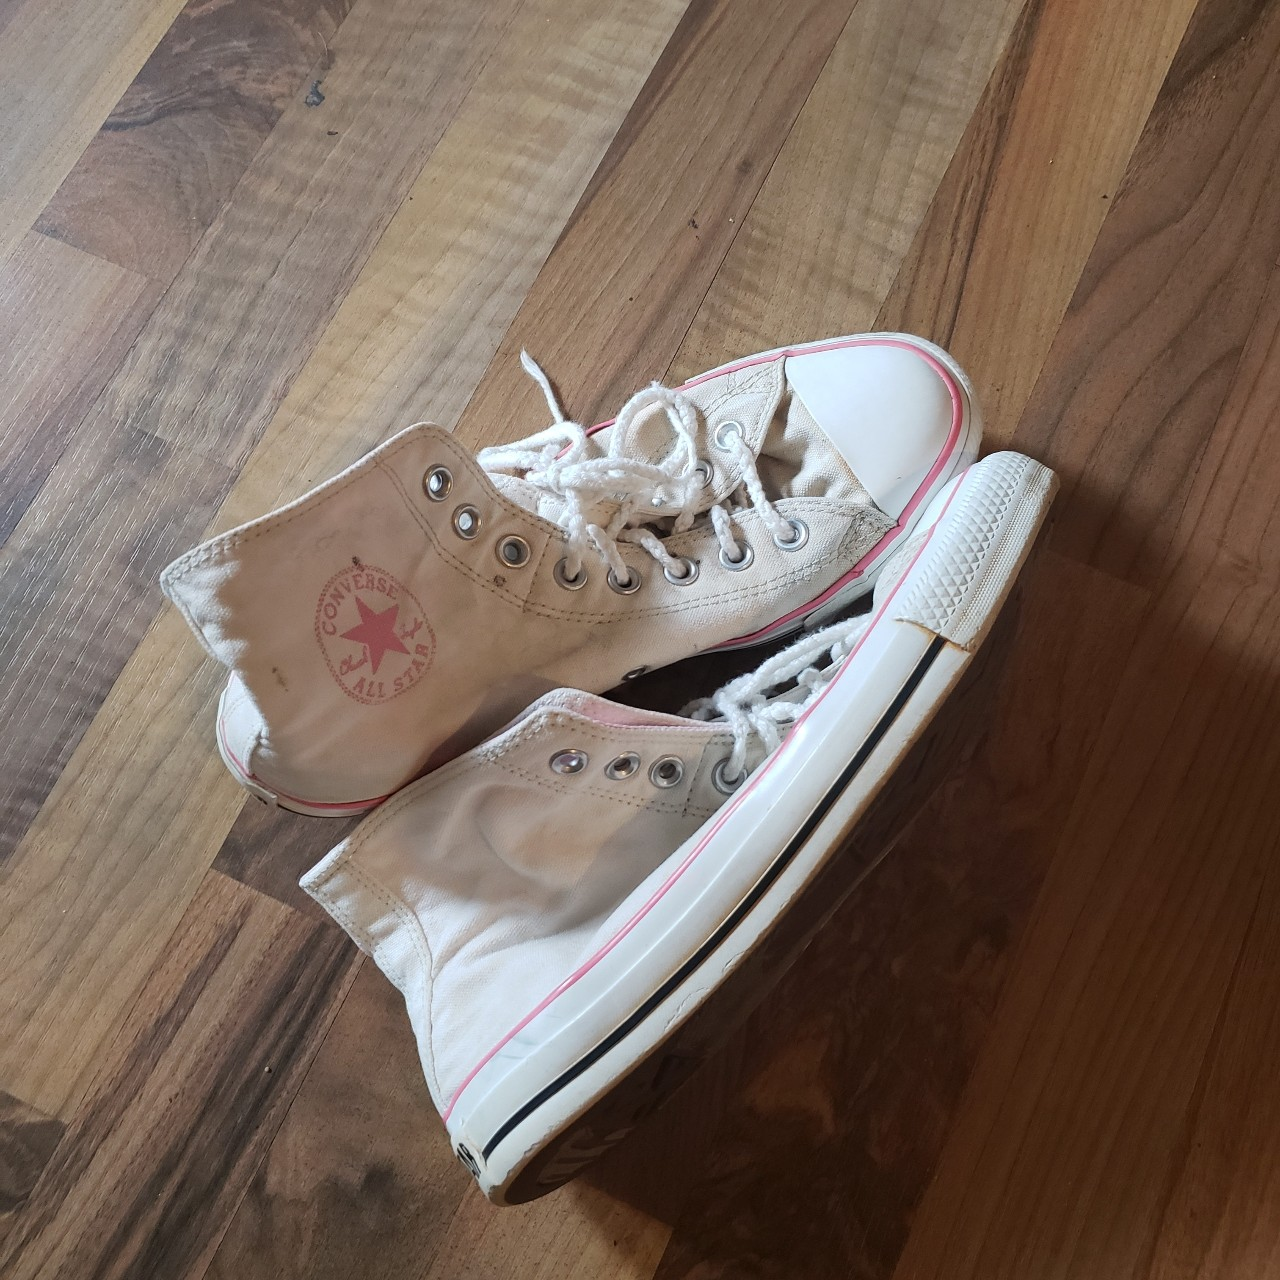 Product Image 1 - Pink and off-white Converse high